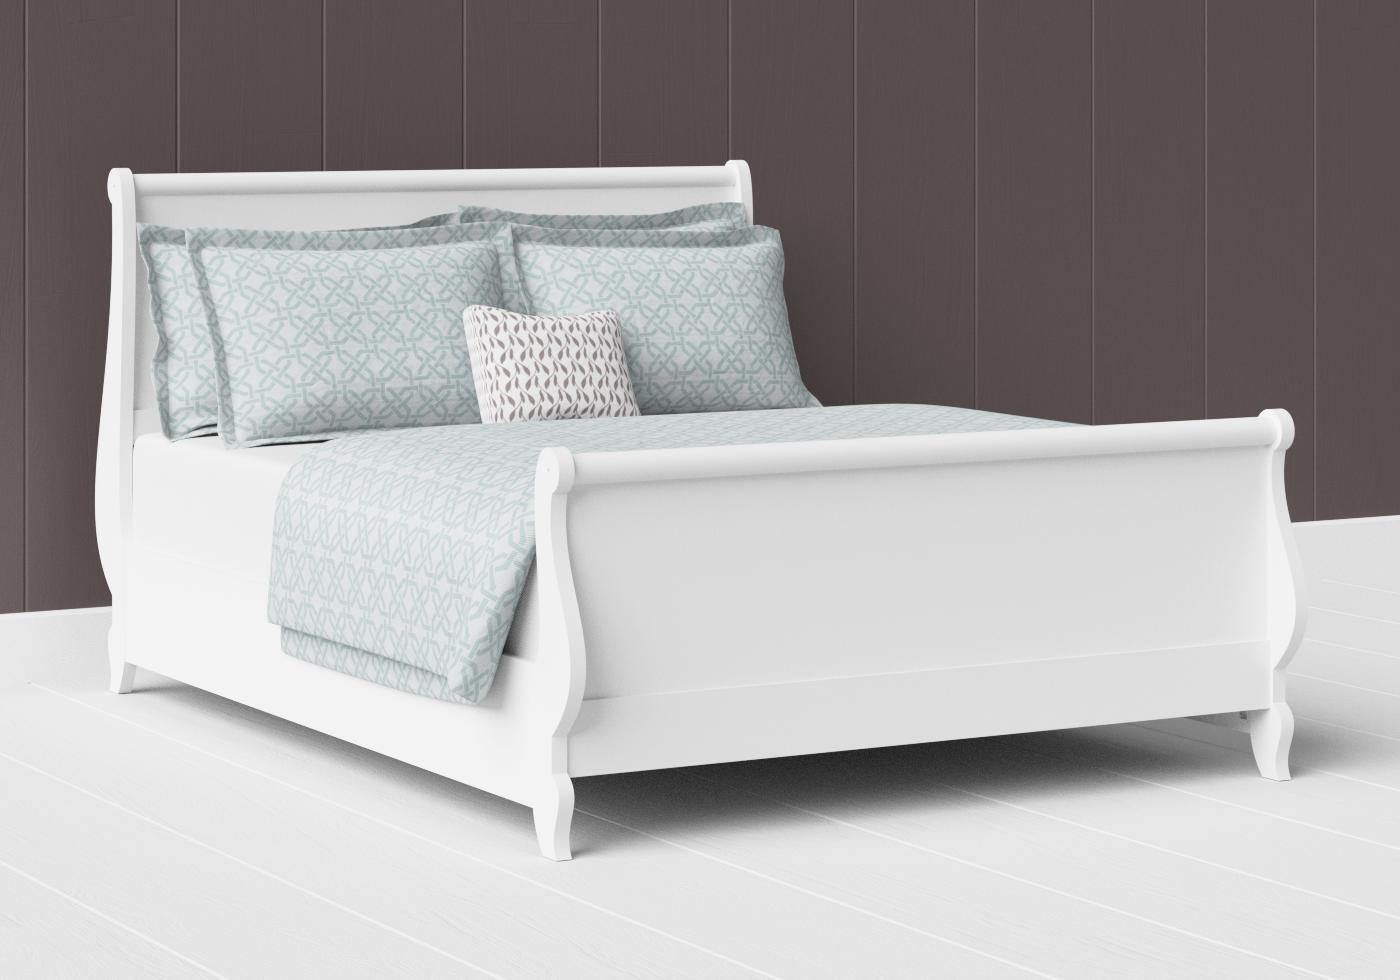 Elliot painted wood bed in satin white